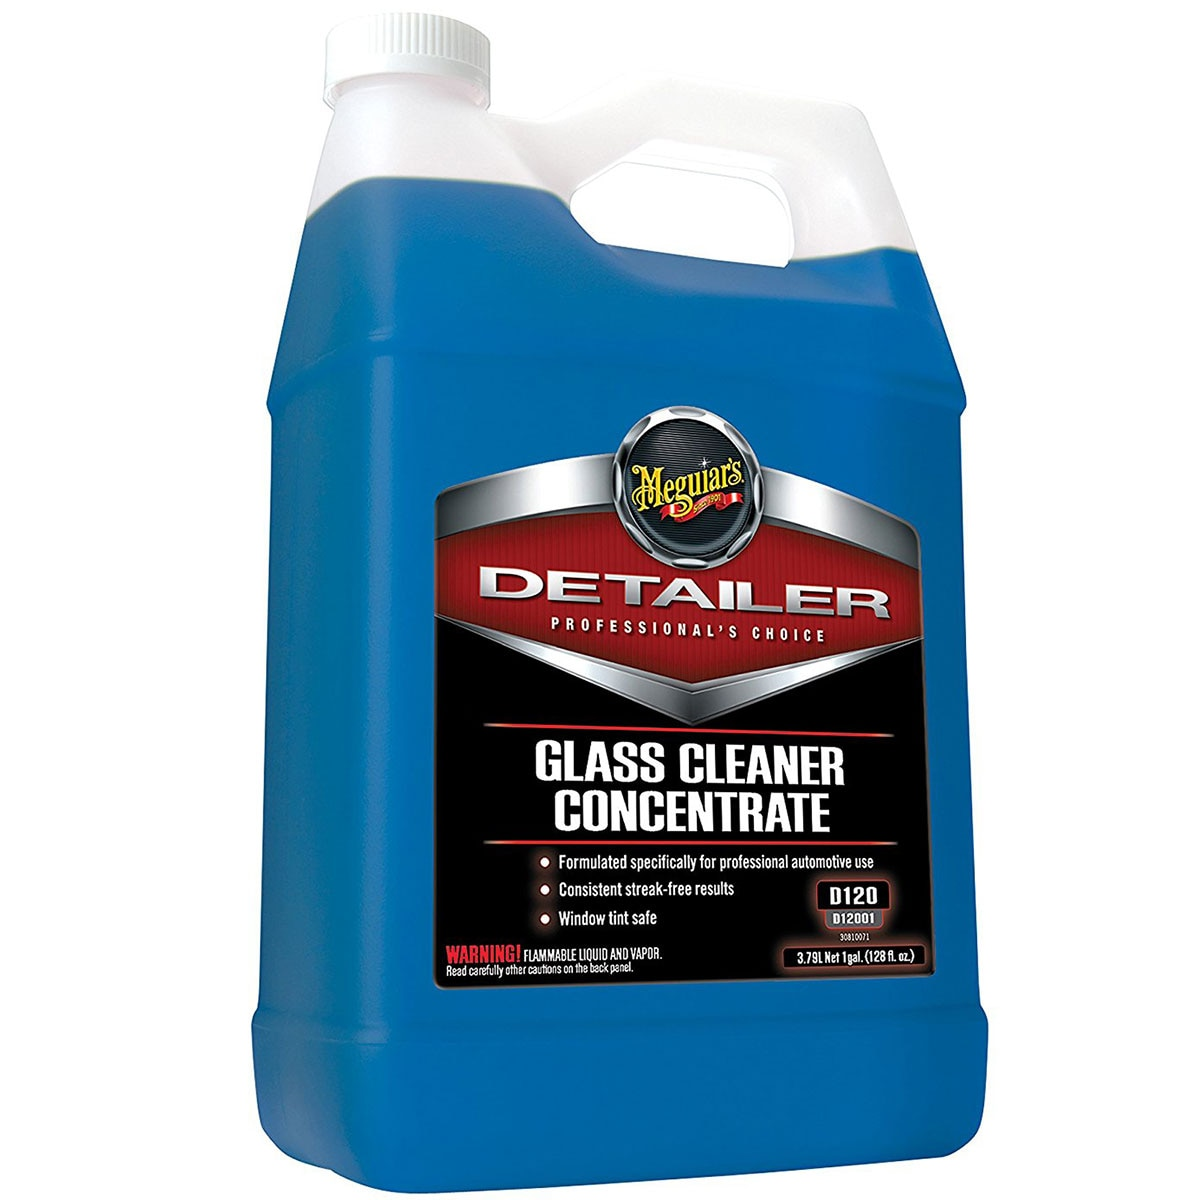 Glass Cleaner Concentrate Meguiars